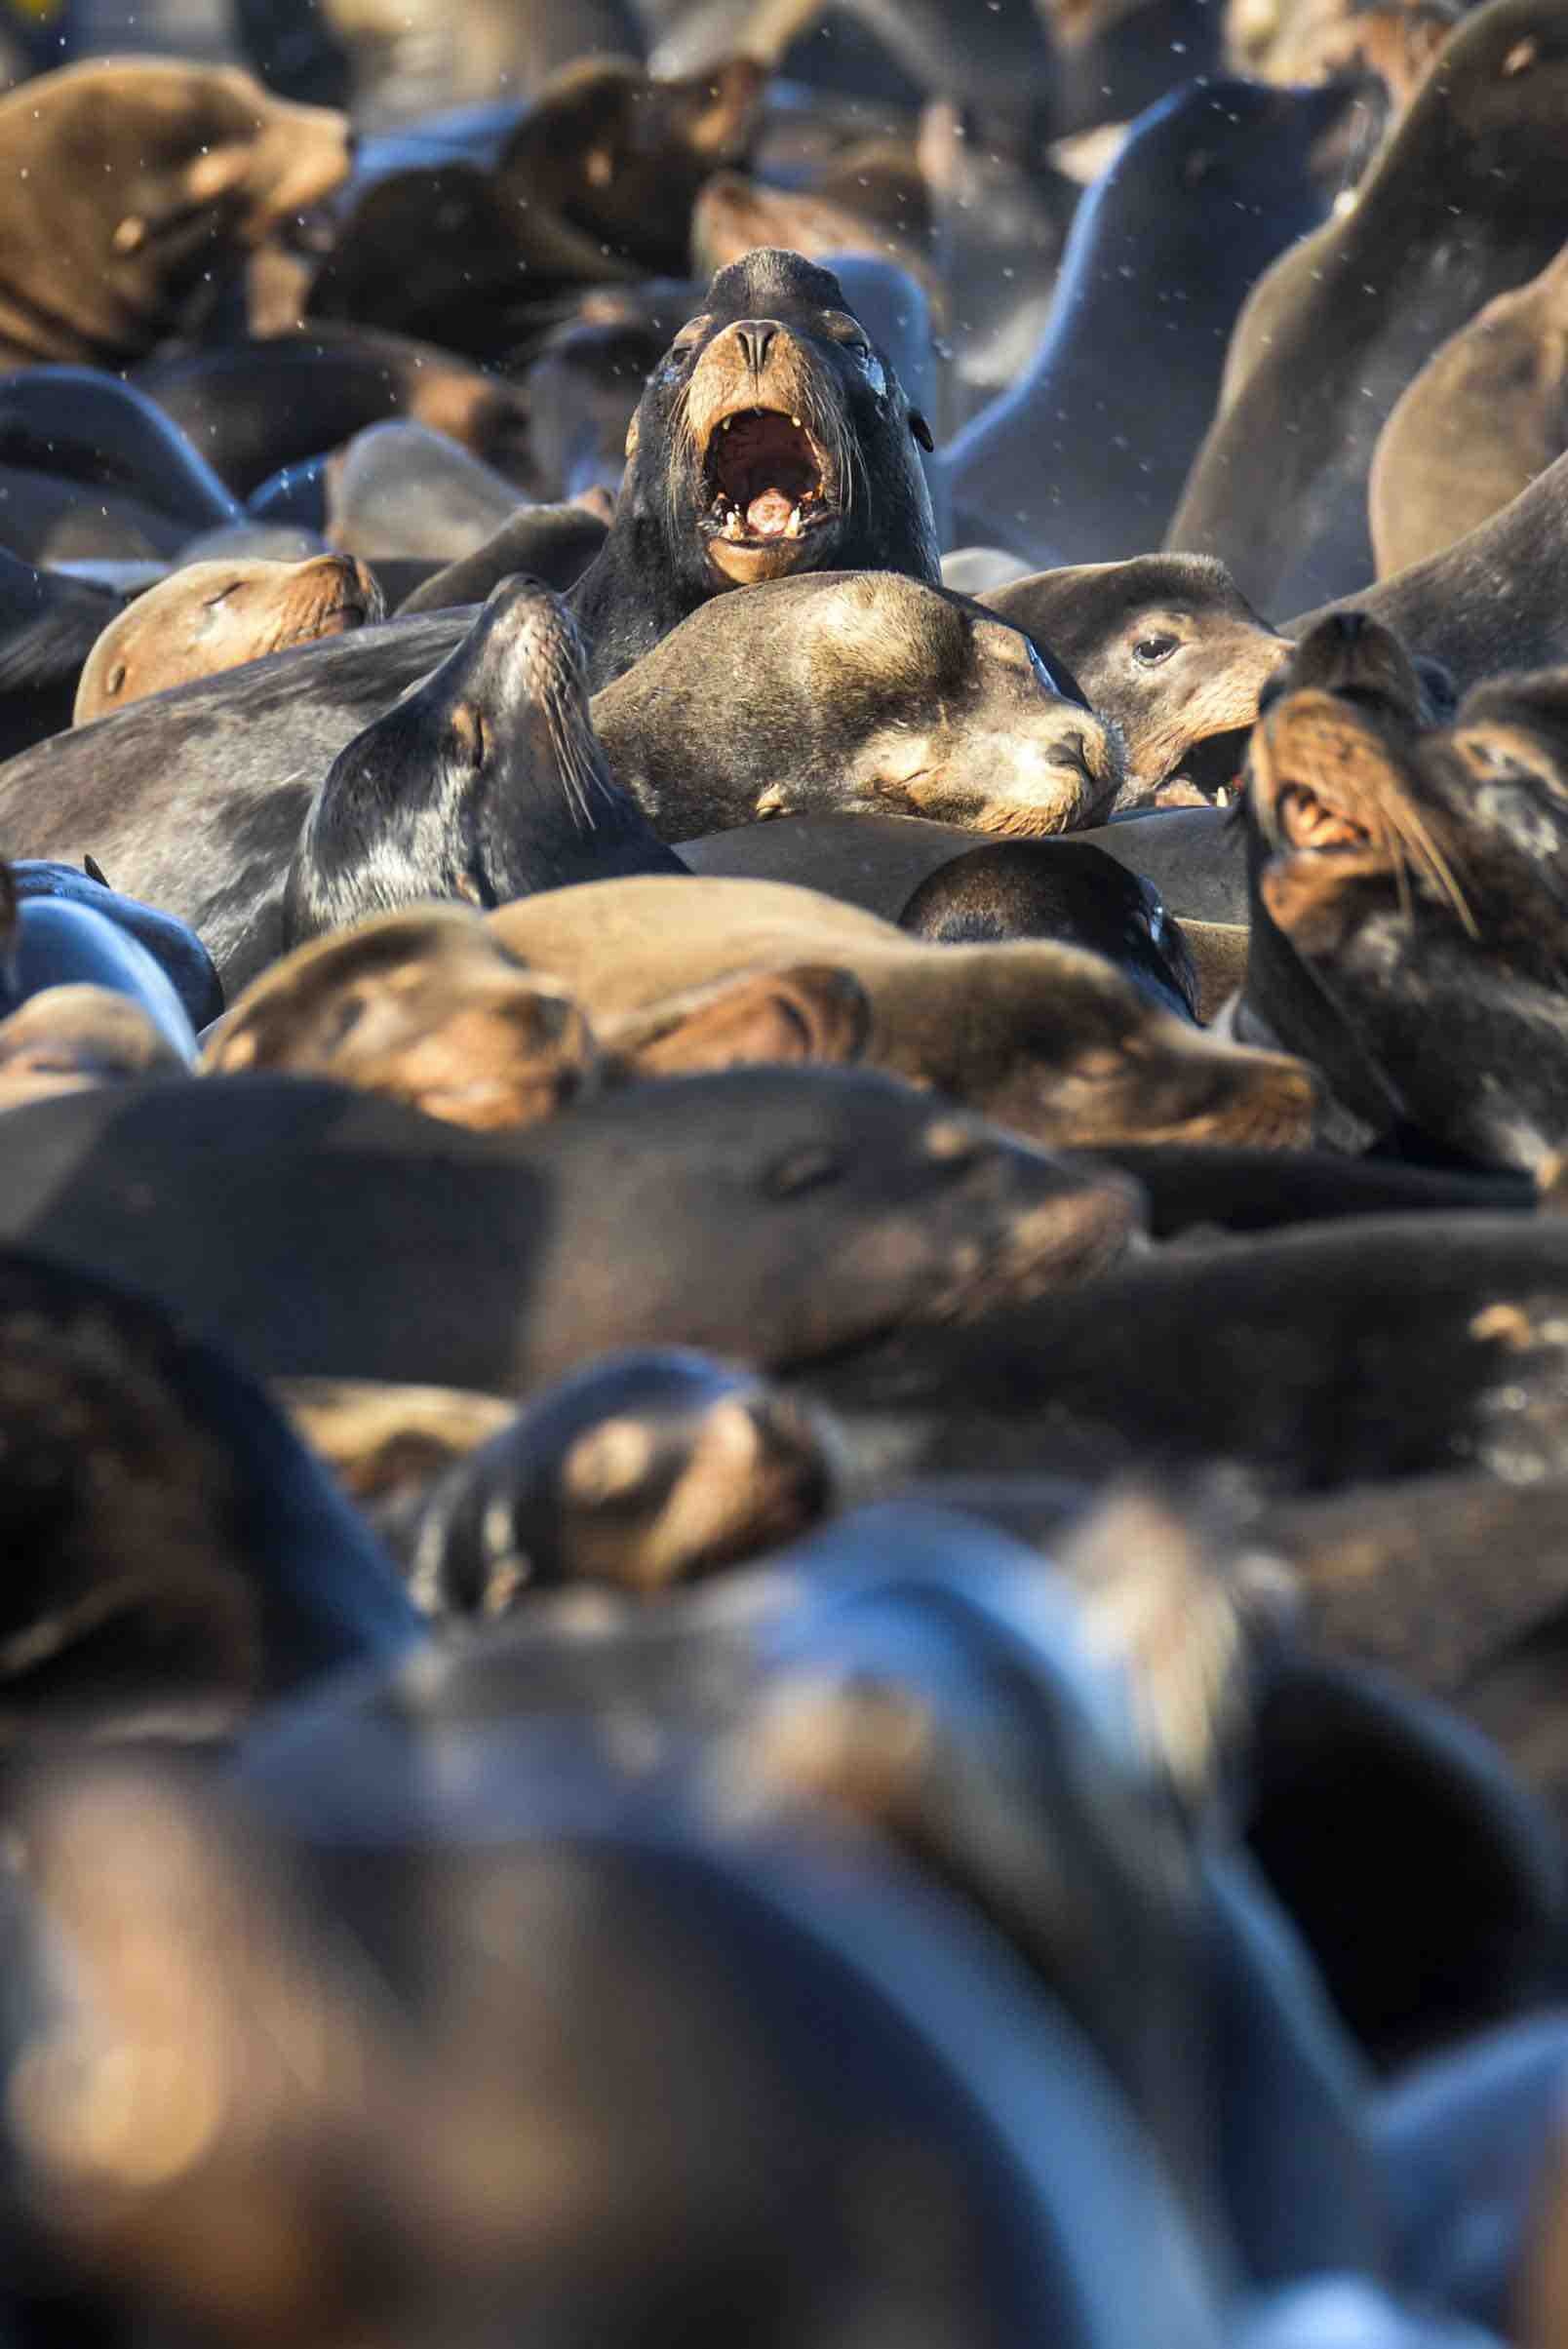 Sea lions make for entertaining viewing on some local waterfronts, but consume many fish, including some protected by the Endangered Species Act. (Joshua Bessexieo photo)